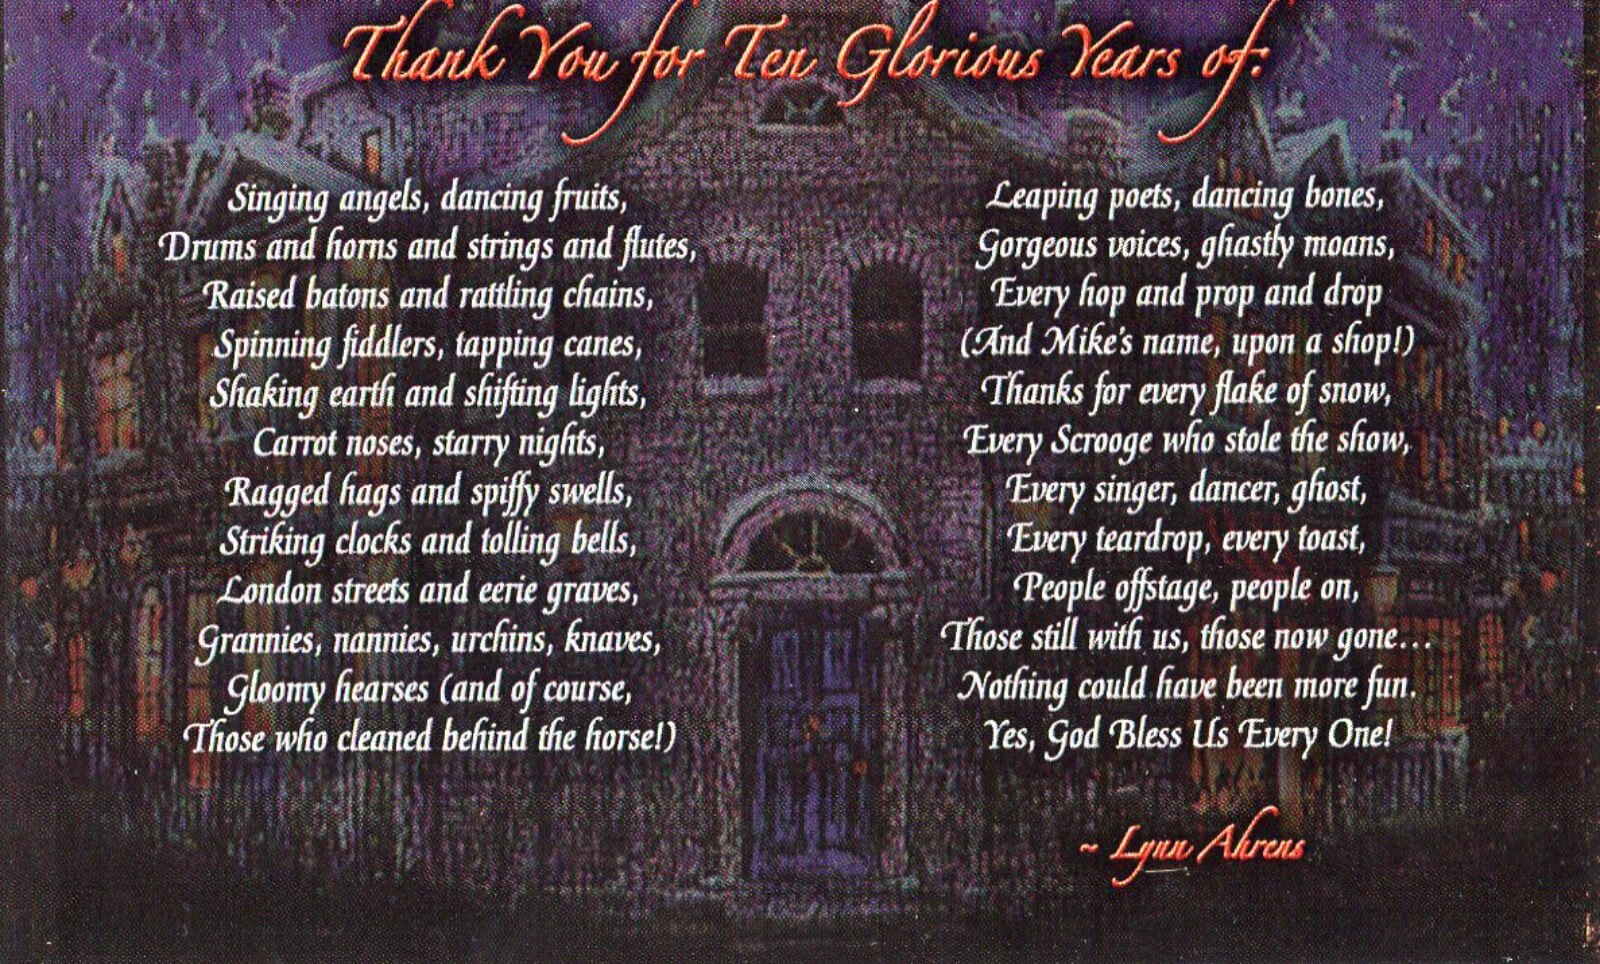 A poem thanking patrons of the show by Lynn Ahrens over top of an illustration of a snowy village.